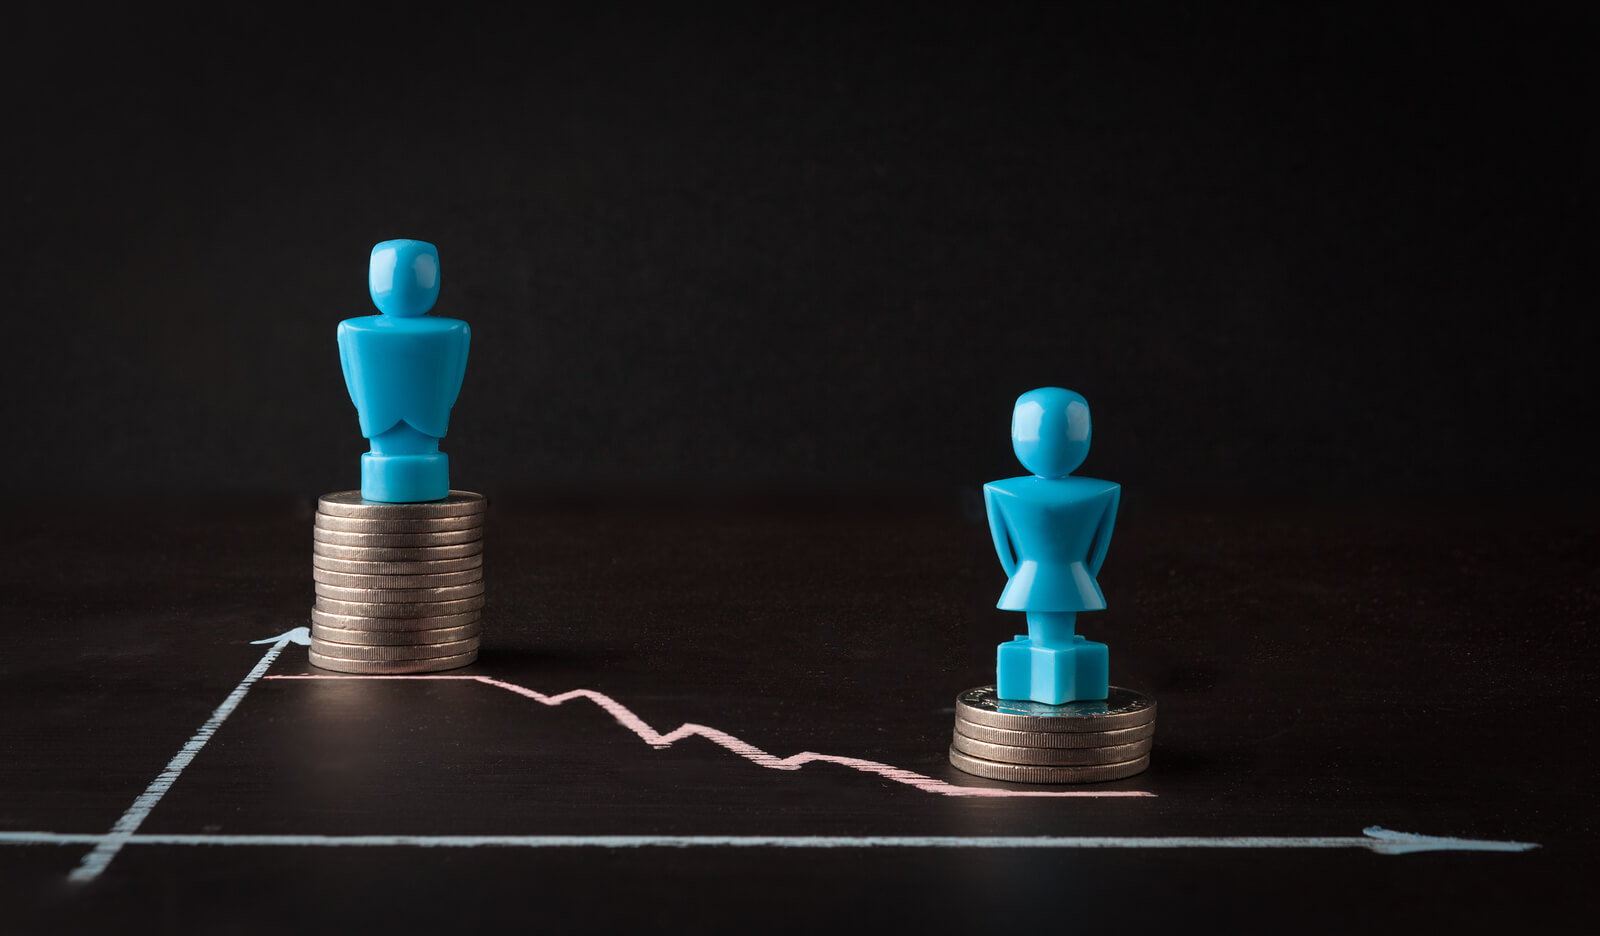 bigstock-Wage-Gap-And-Gender-Equality-C-126124202 (1)